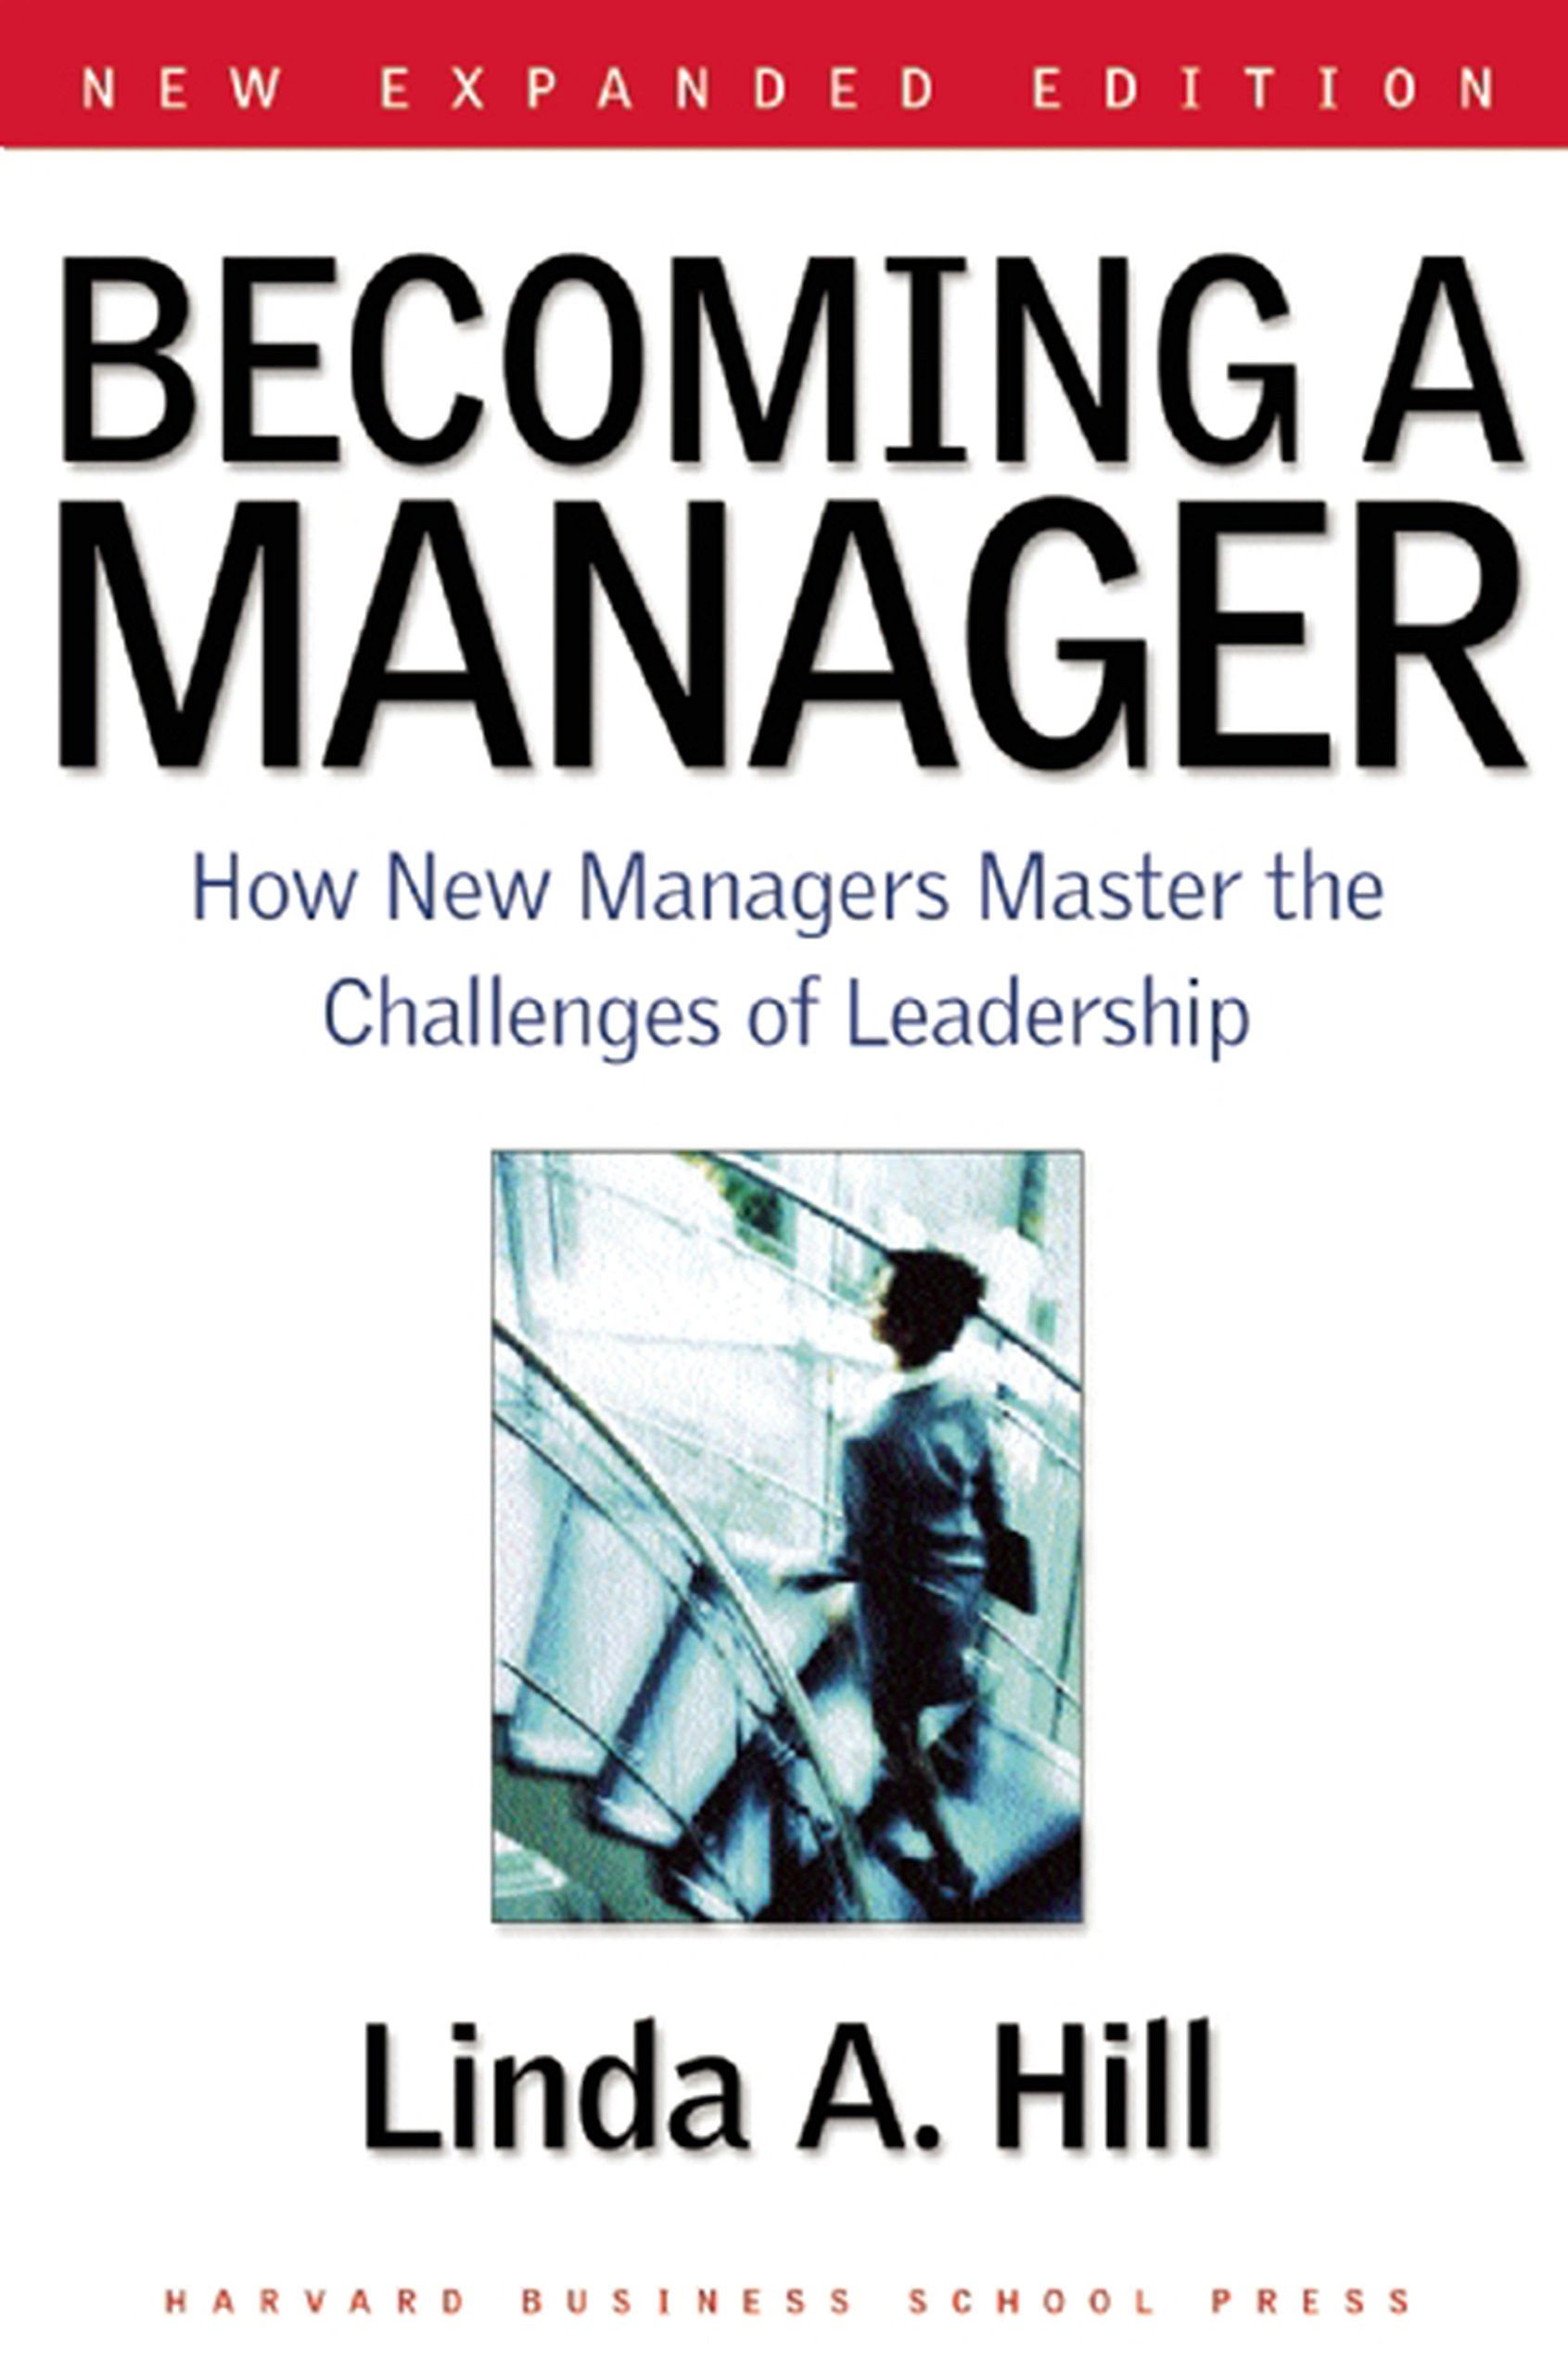 Amazon.com: Becoming a Manager: How New Managers Master the Challenges of  Leadership (9781591391821): Linda A. Hill: Books